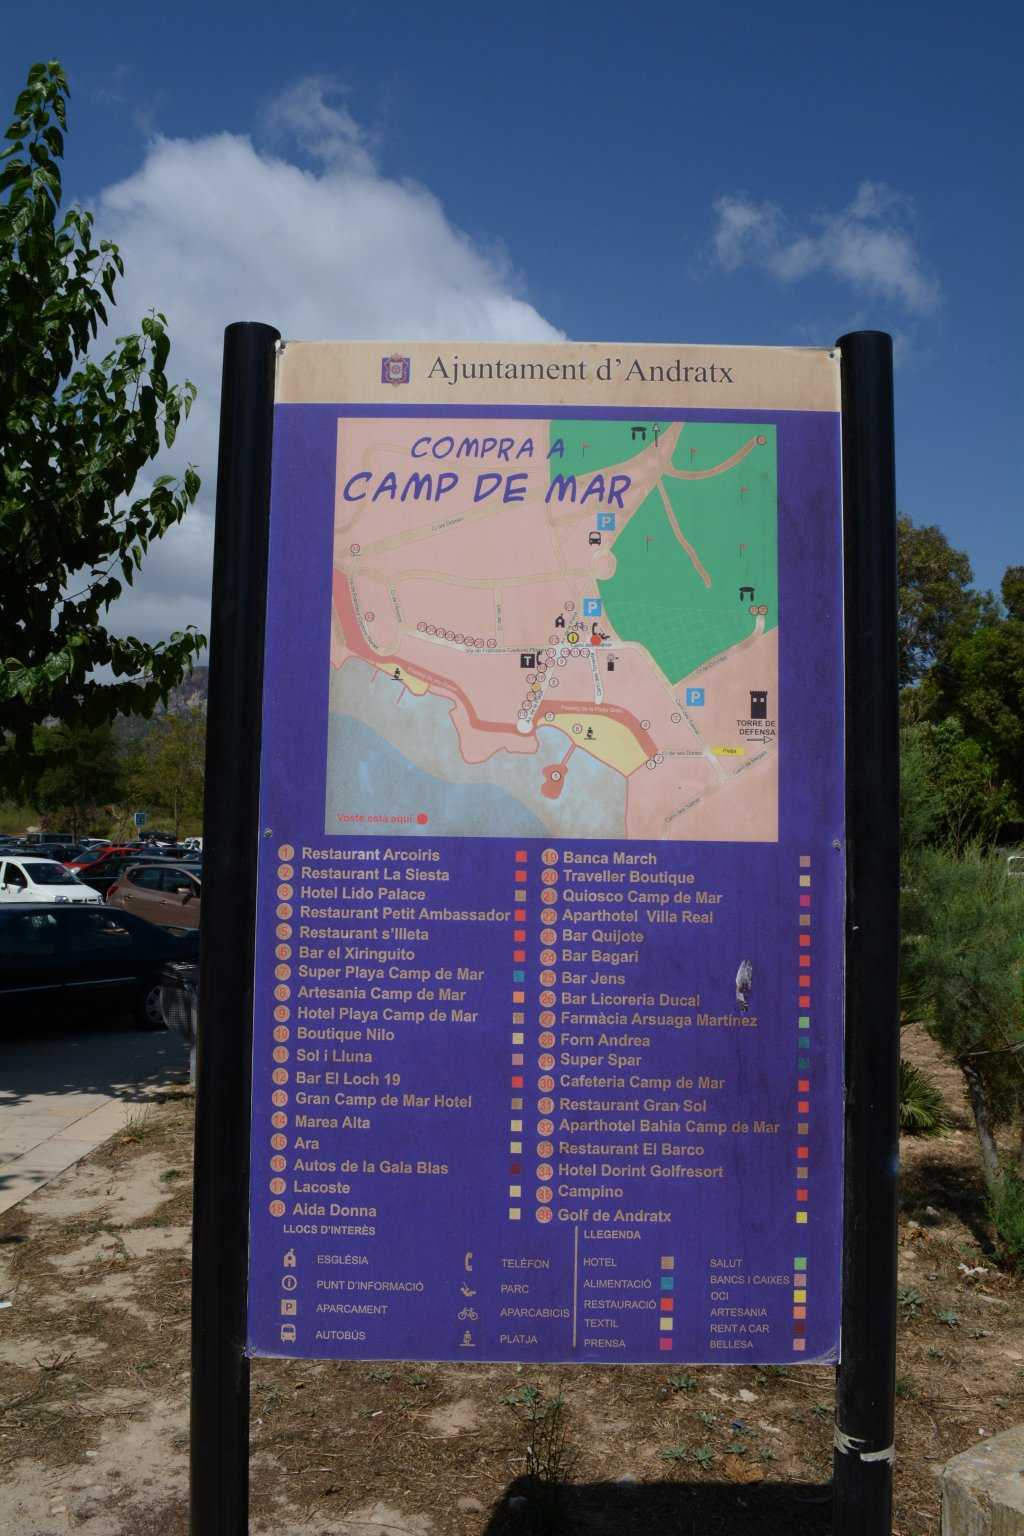 Andratx - Camp de Mar